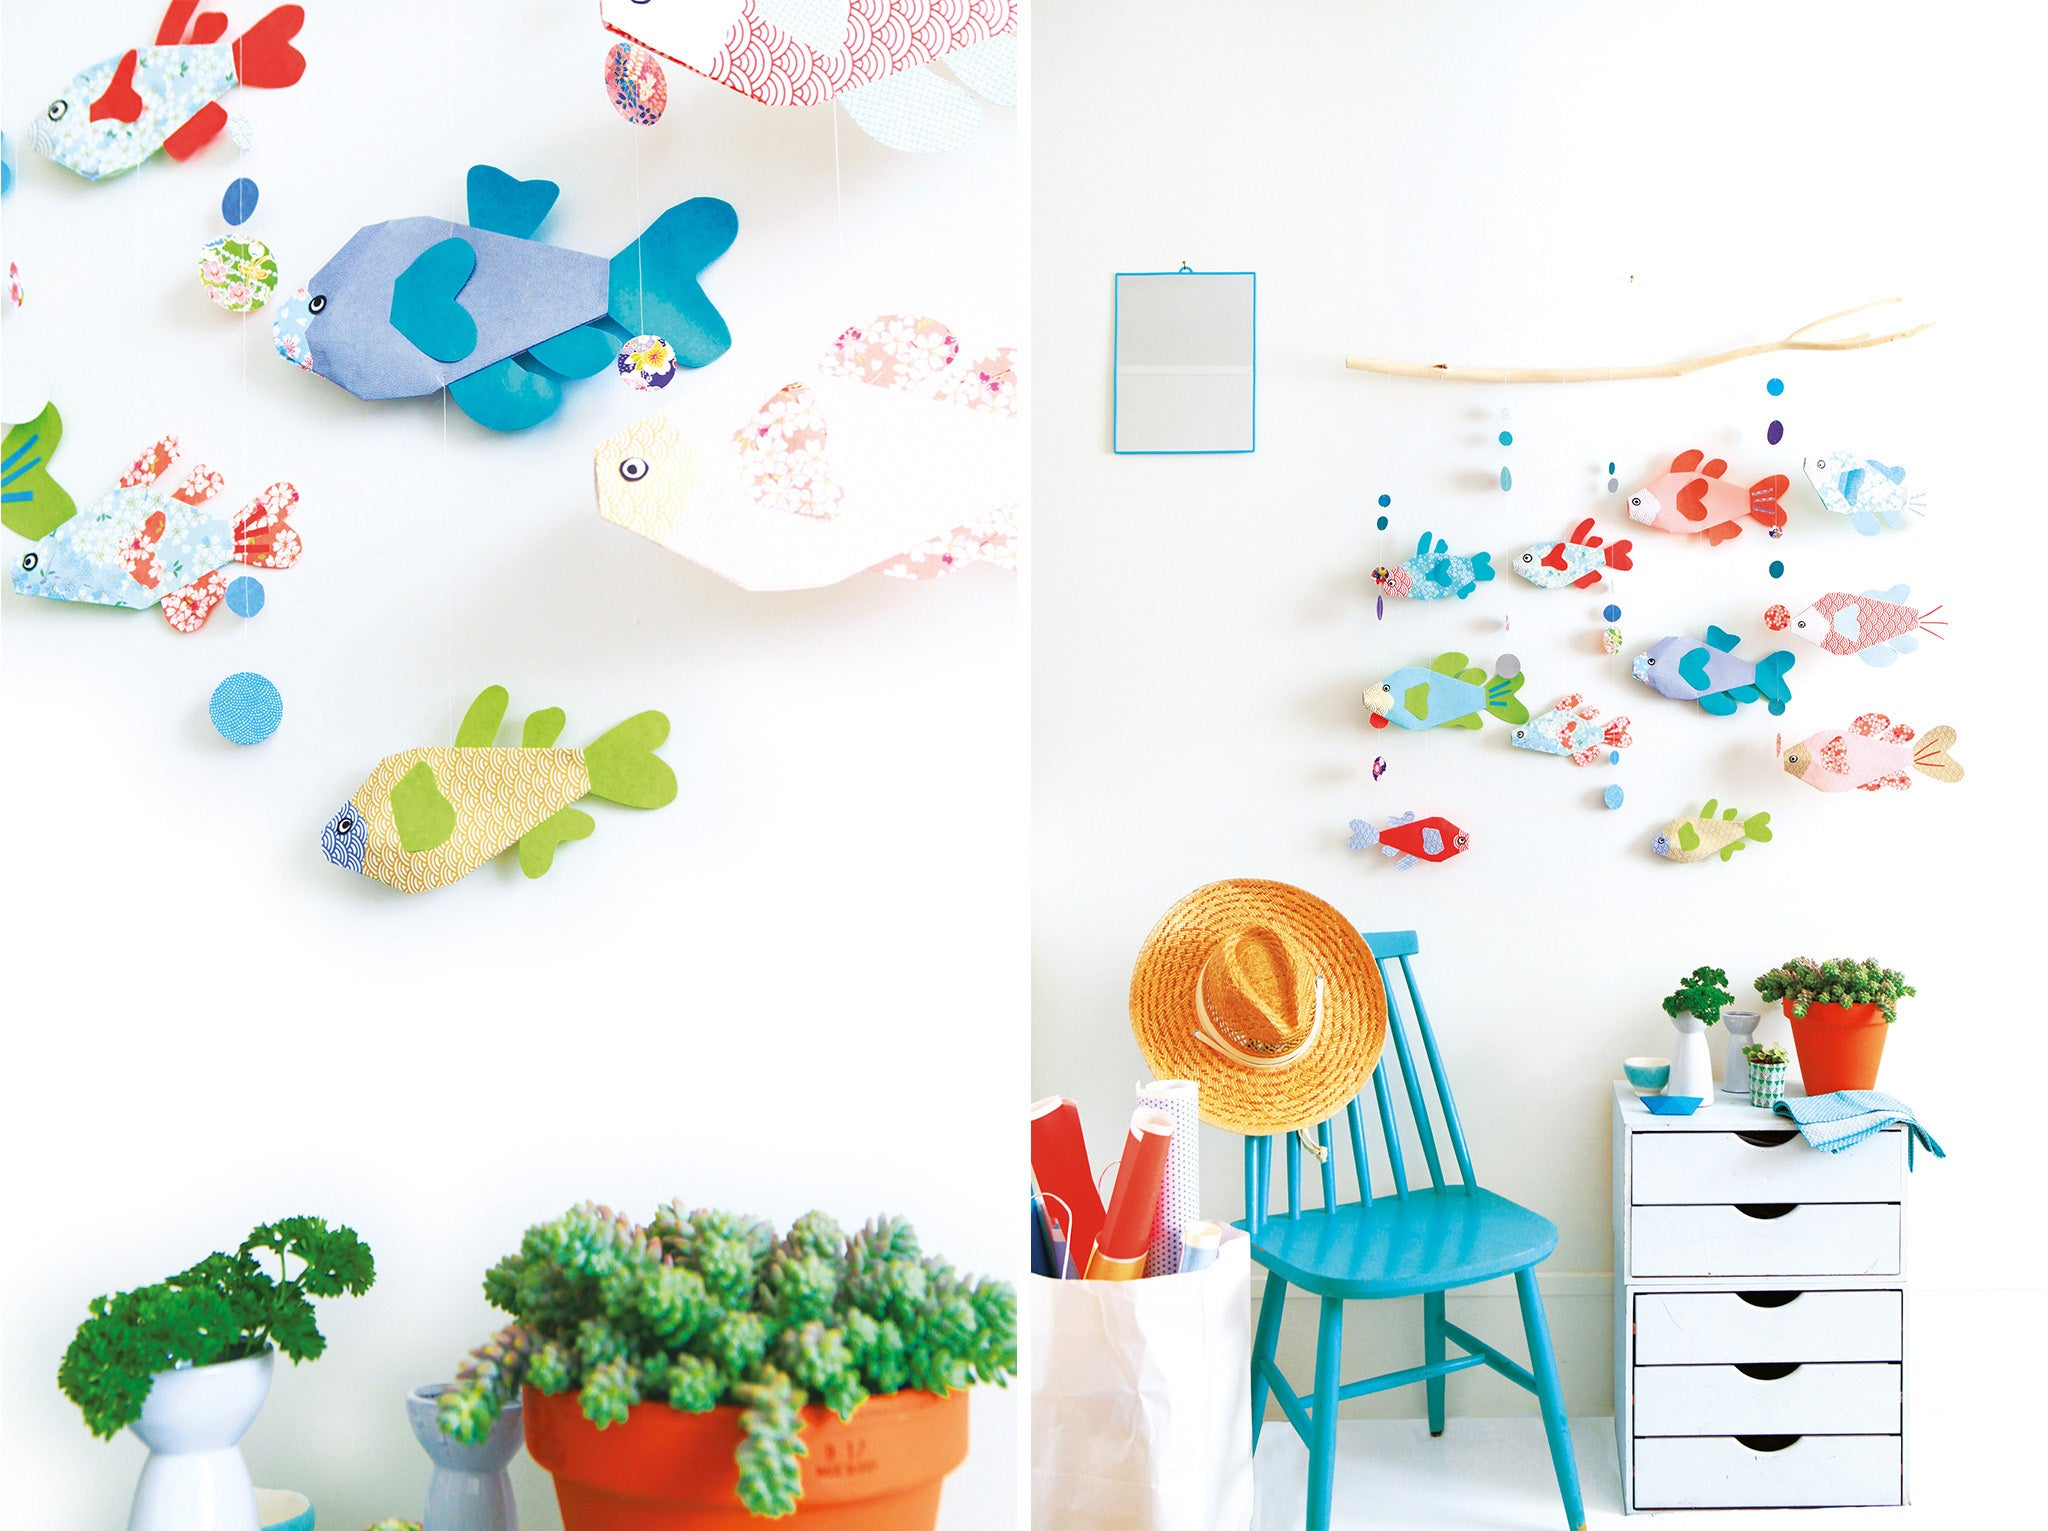 article-mobile-poissons-ambiance-1